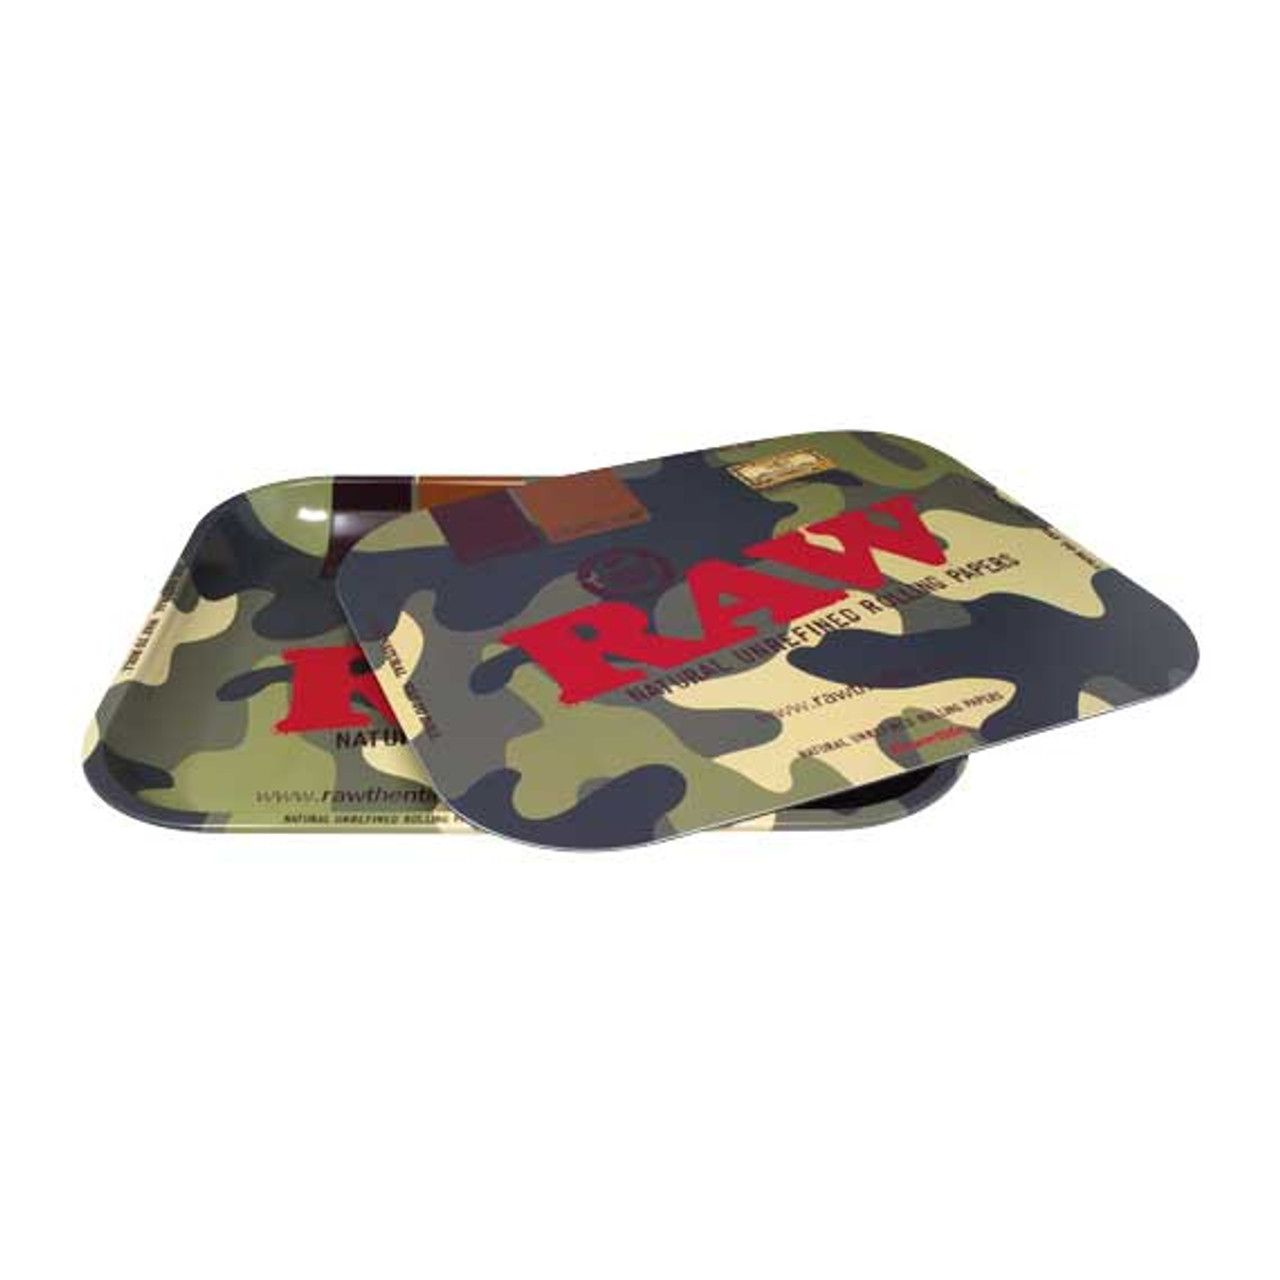 Camo Tray Cover - Rolling Tray not included